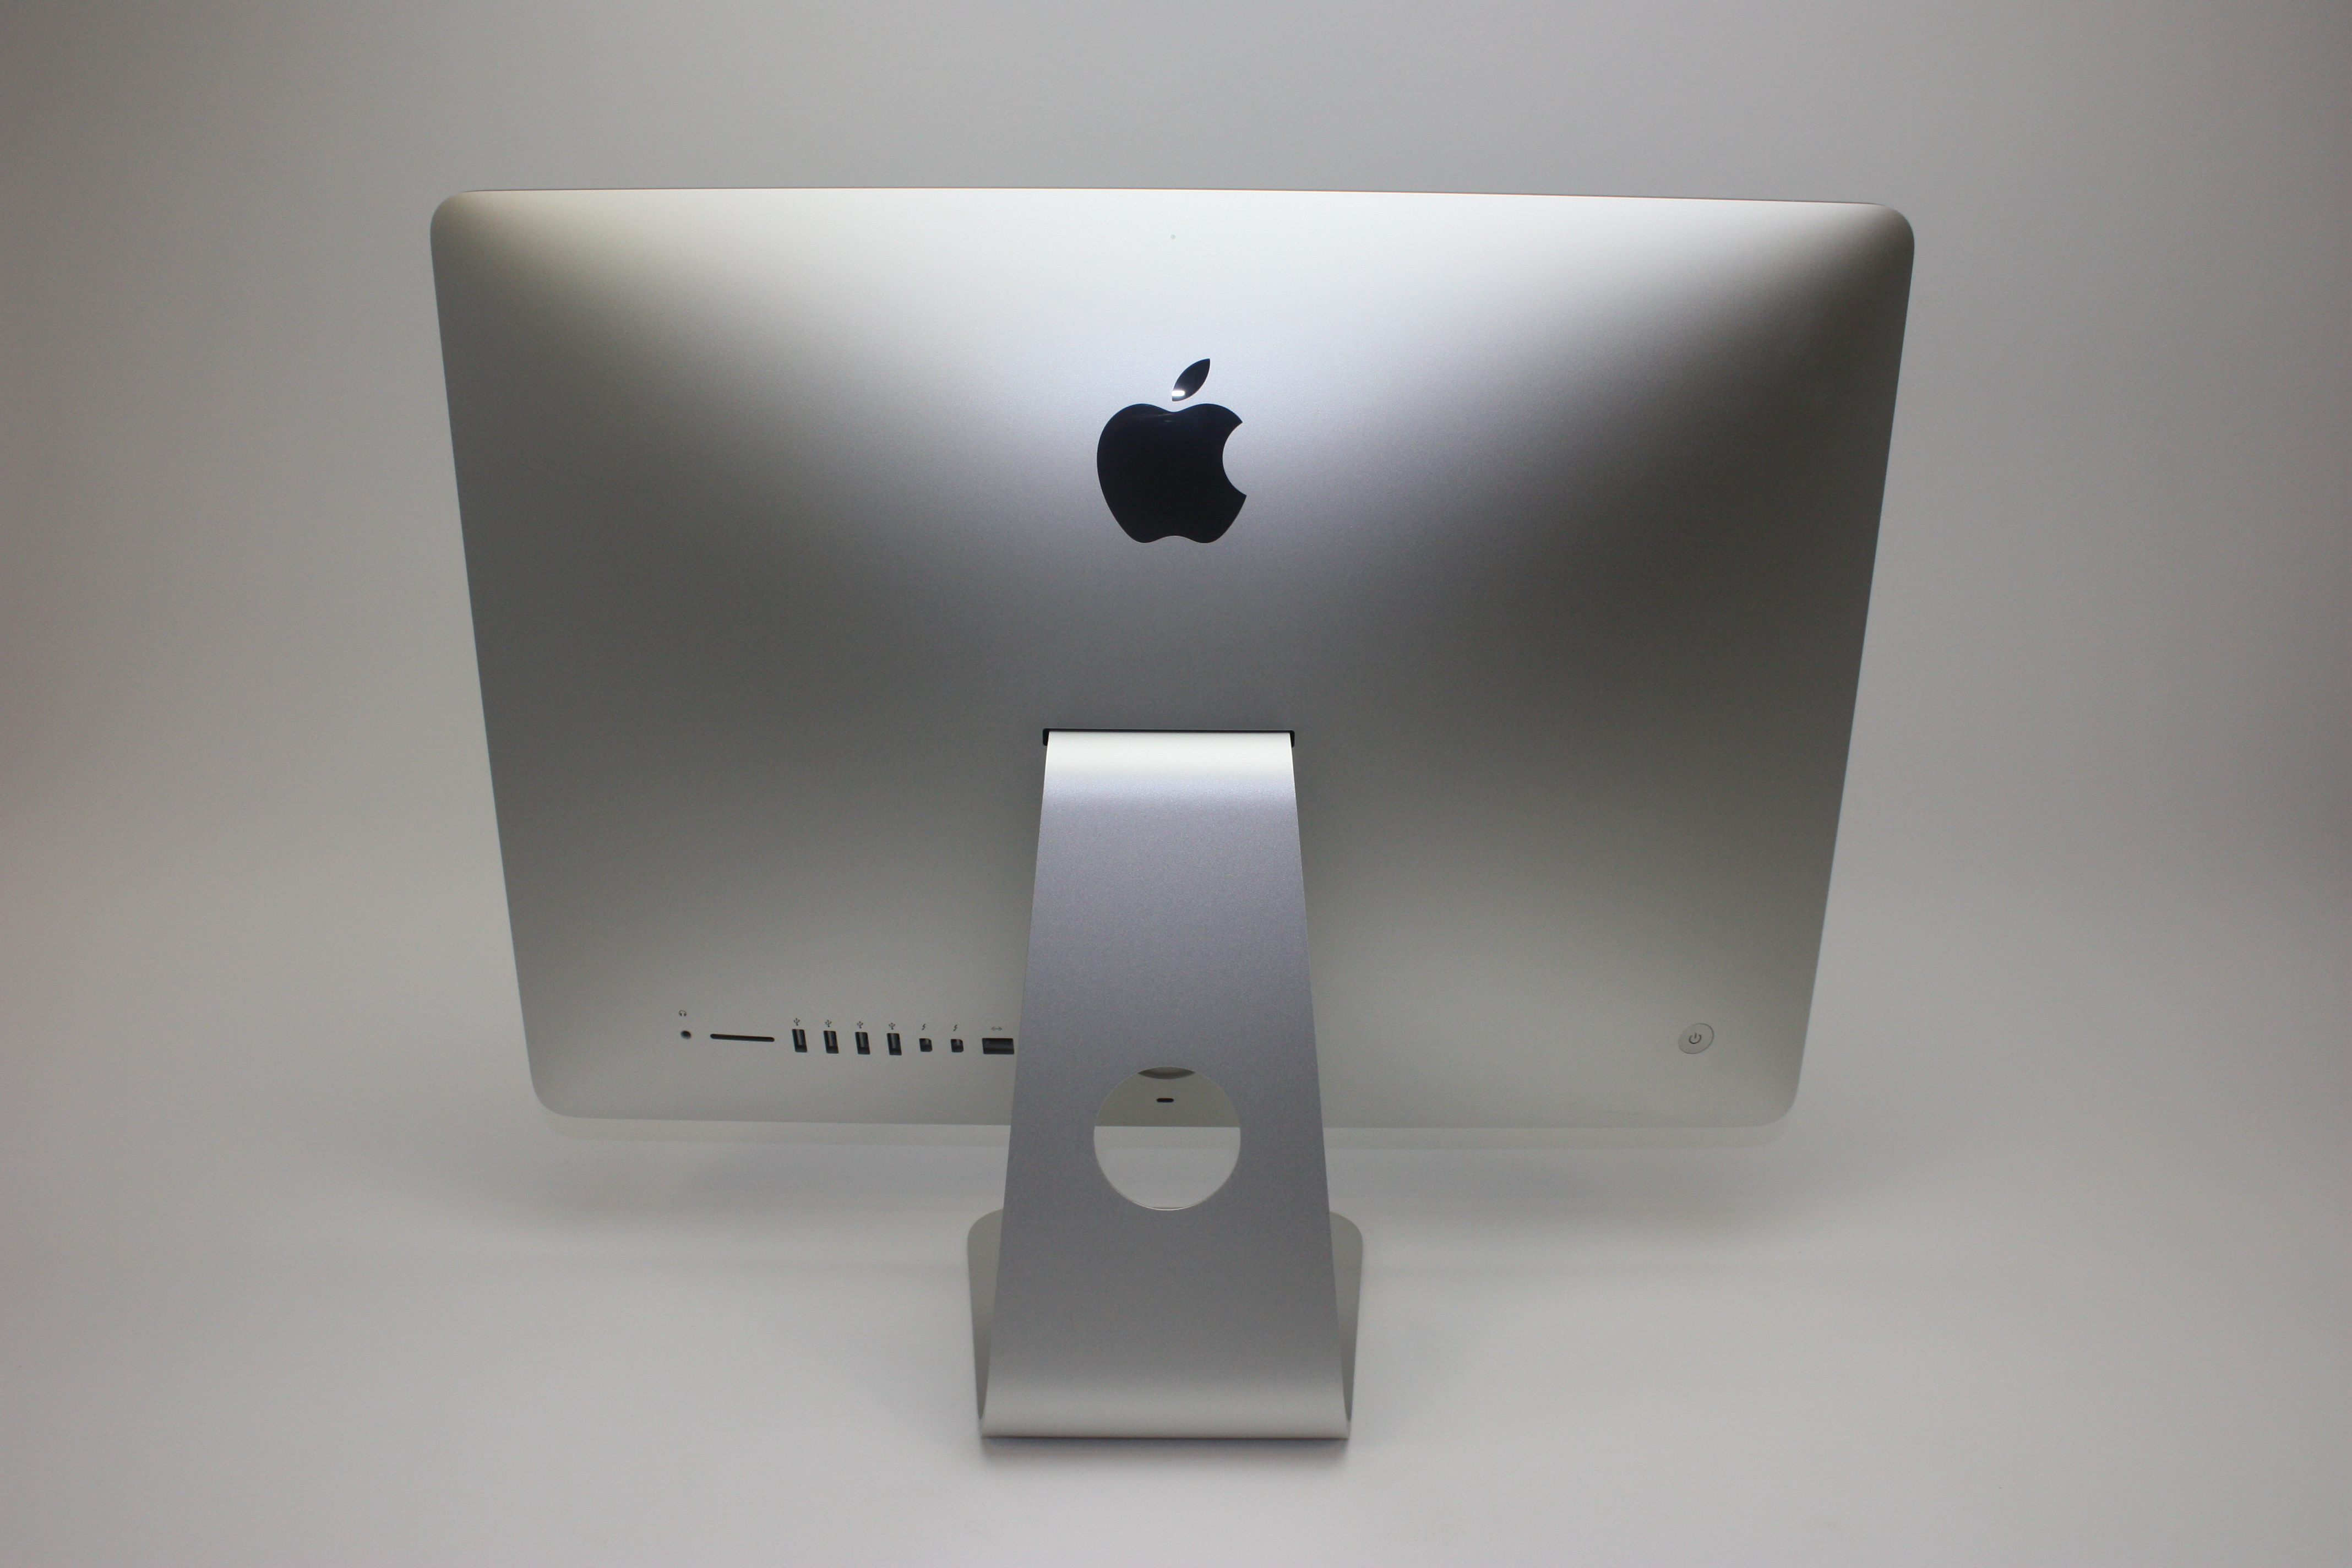 iMac (Retina 4K 21.5-inch Late 2015), 3.1 GHz Intel Core i5, 8 Gb 1867 MHz DDR3, 1 TB SATA Disk, Product age: 26 months, image 4